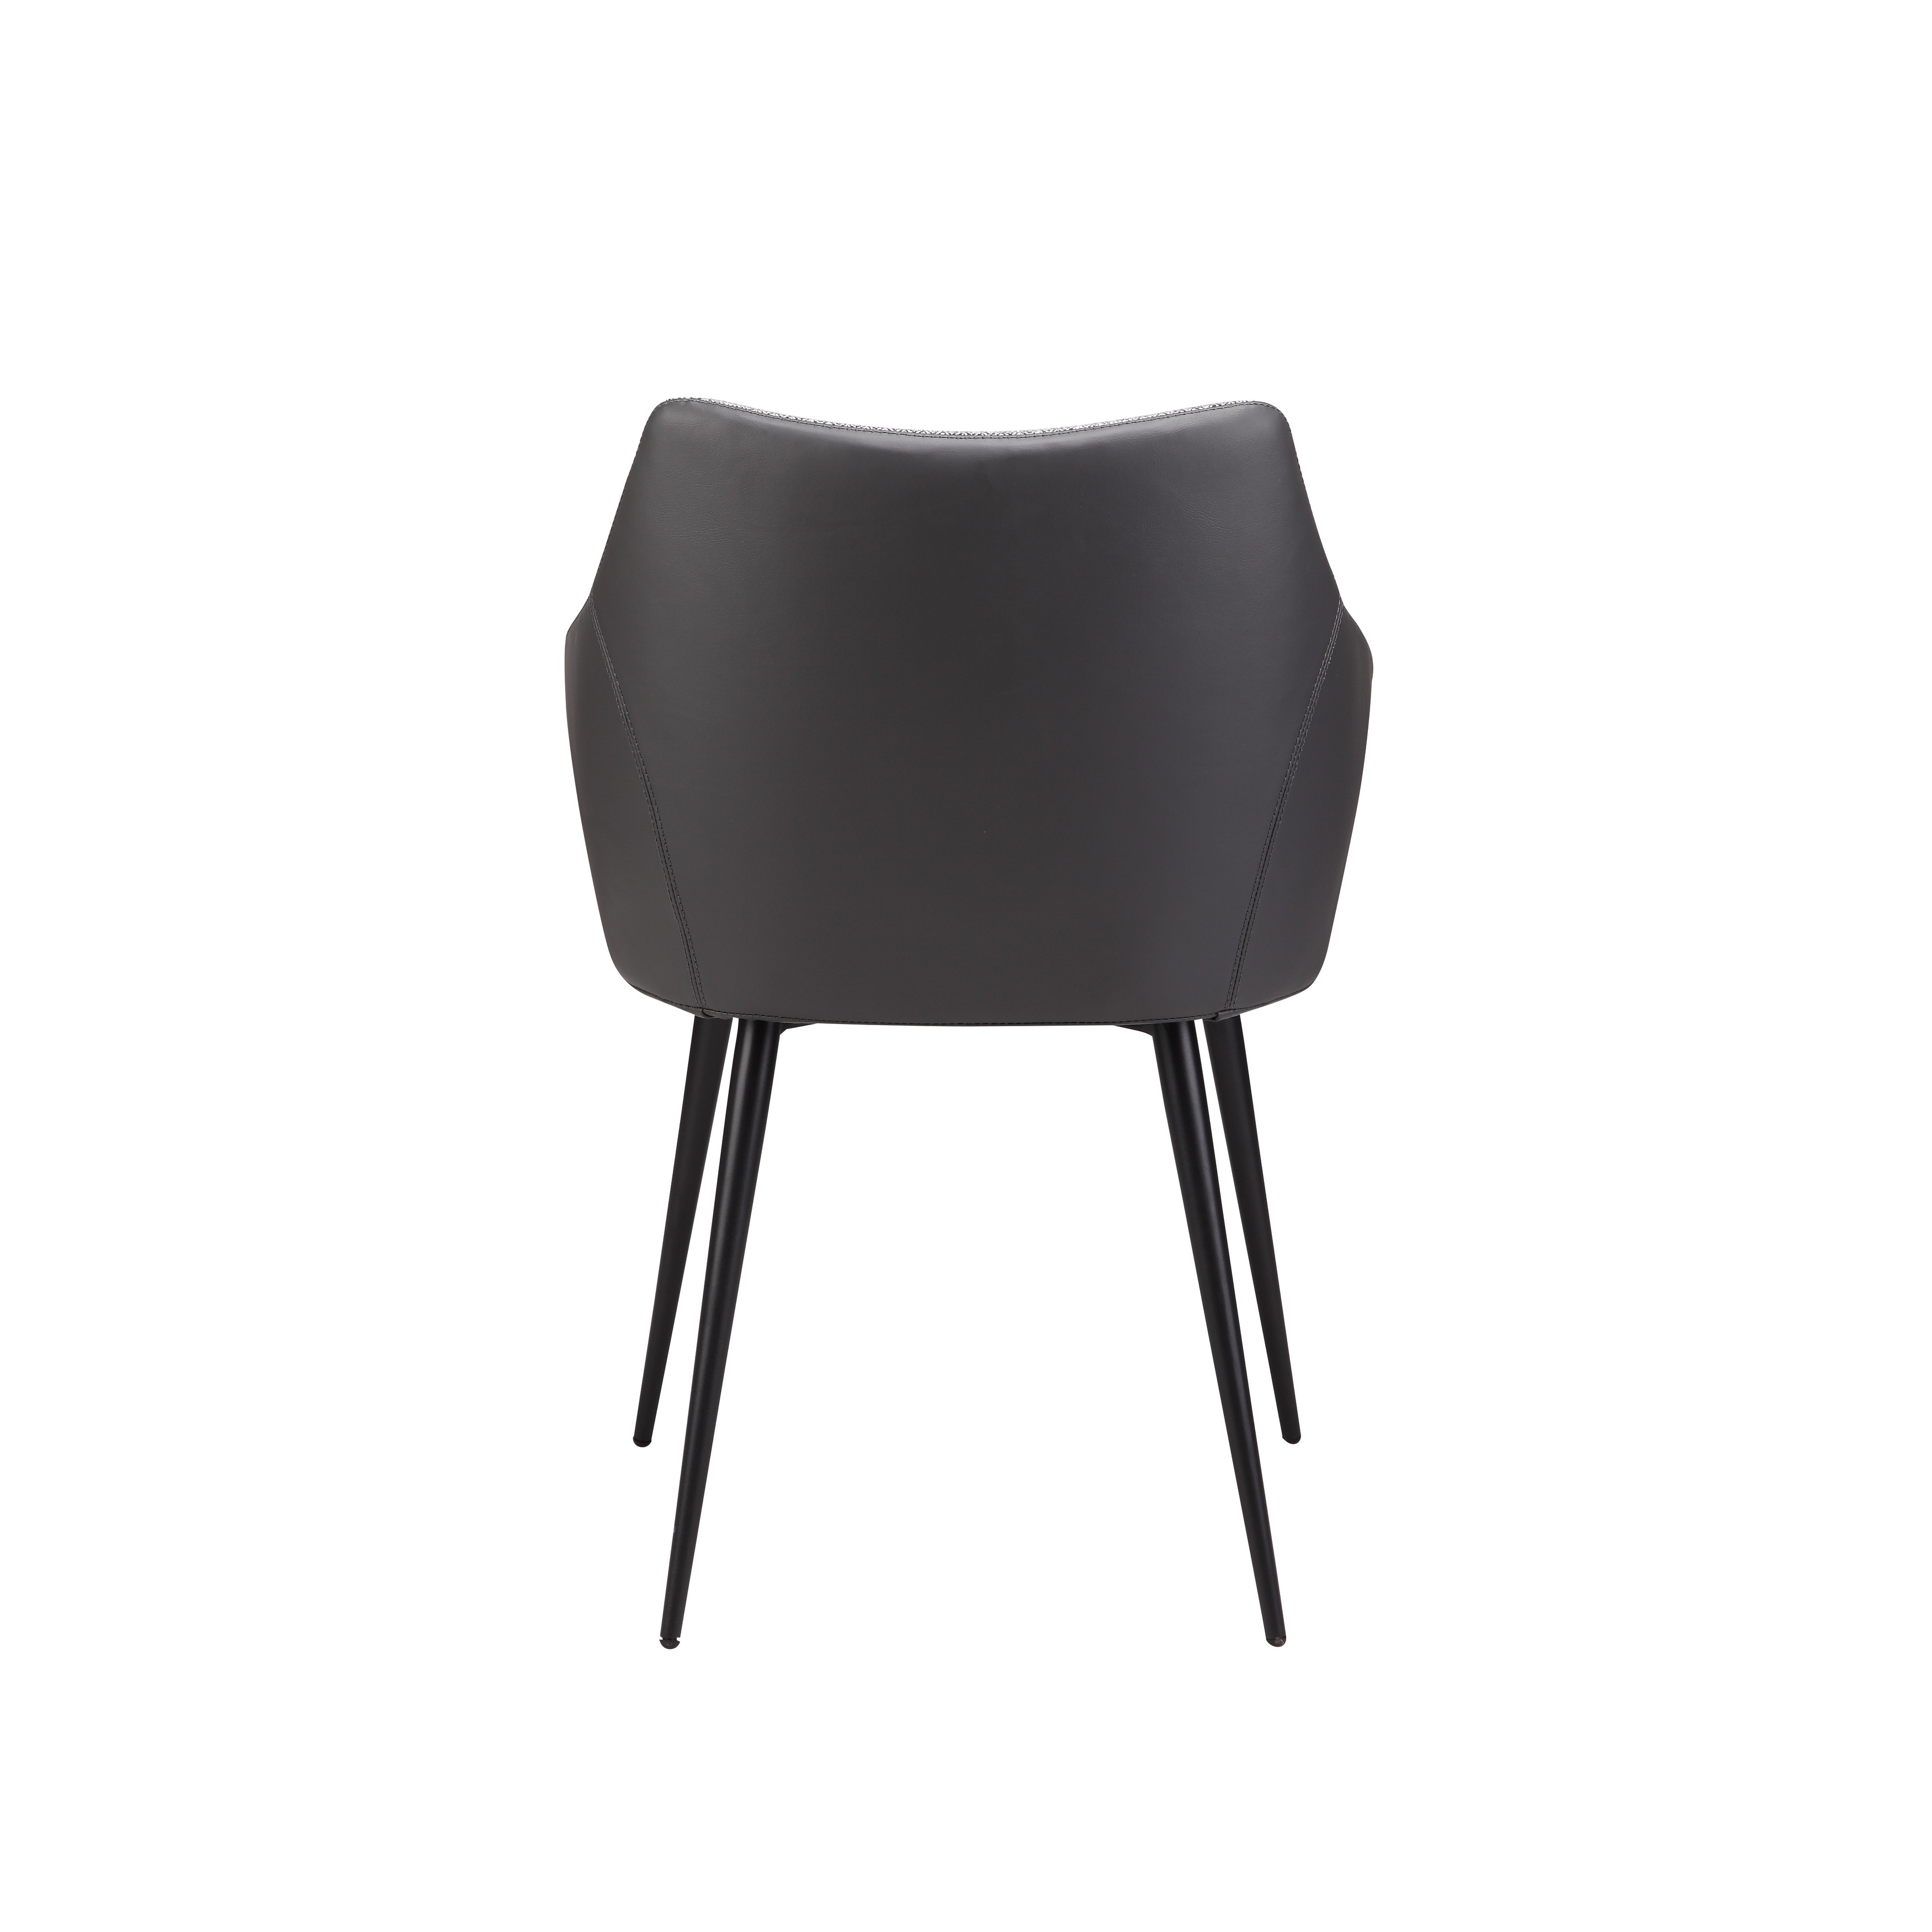 Aurelle Home Beckett Grey Upholstered Dining Chair   Free Shipping Today    Overstock.com   25448837